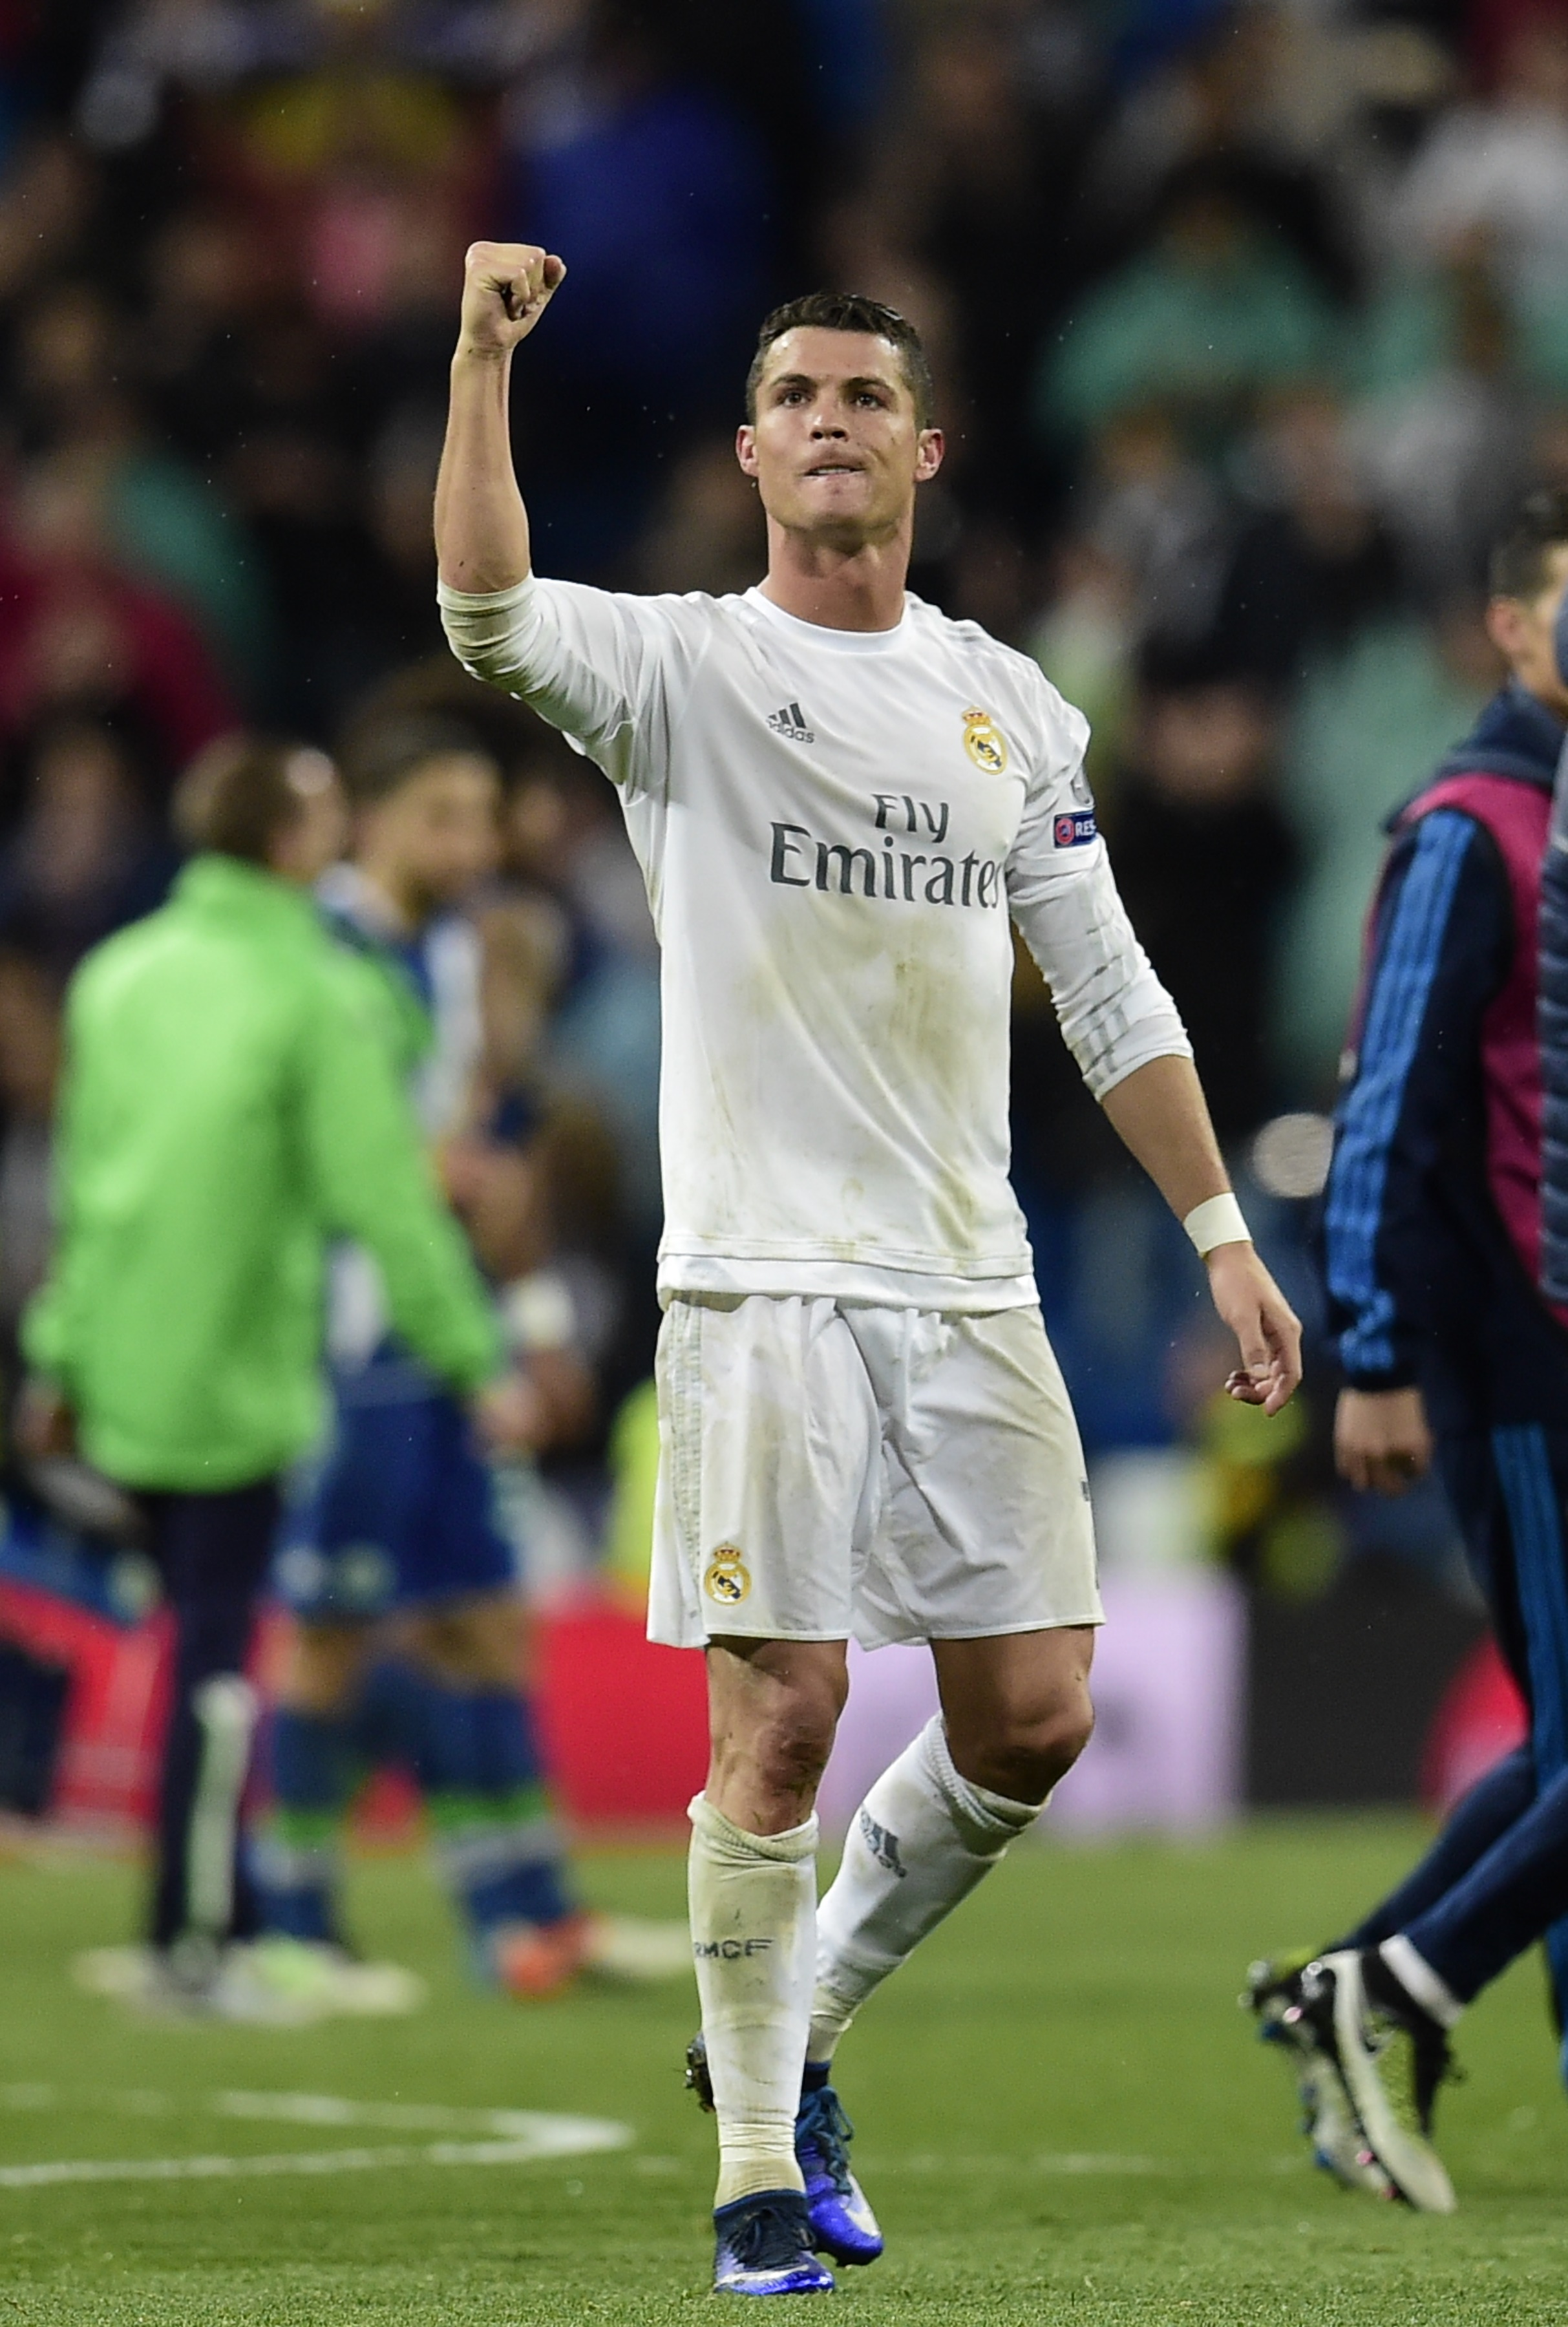 Real Madrid's Portuguese forward Cristiano Ronaldo celebrates at the end of  during the Champions League quarter-final second leg football match Real Madrid vs Wolfsburg at the Santiago Bernabeu stadium in Madrid on April 12, 2016. / AFP PHOTO / JAVIER SORIANO